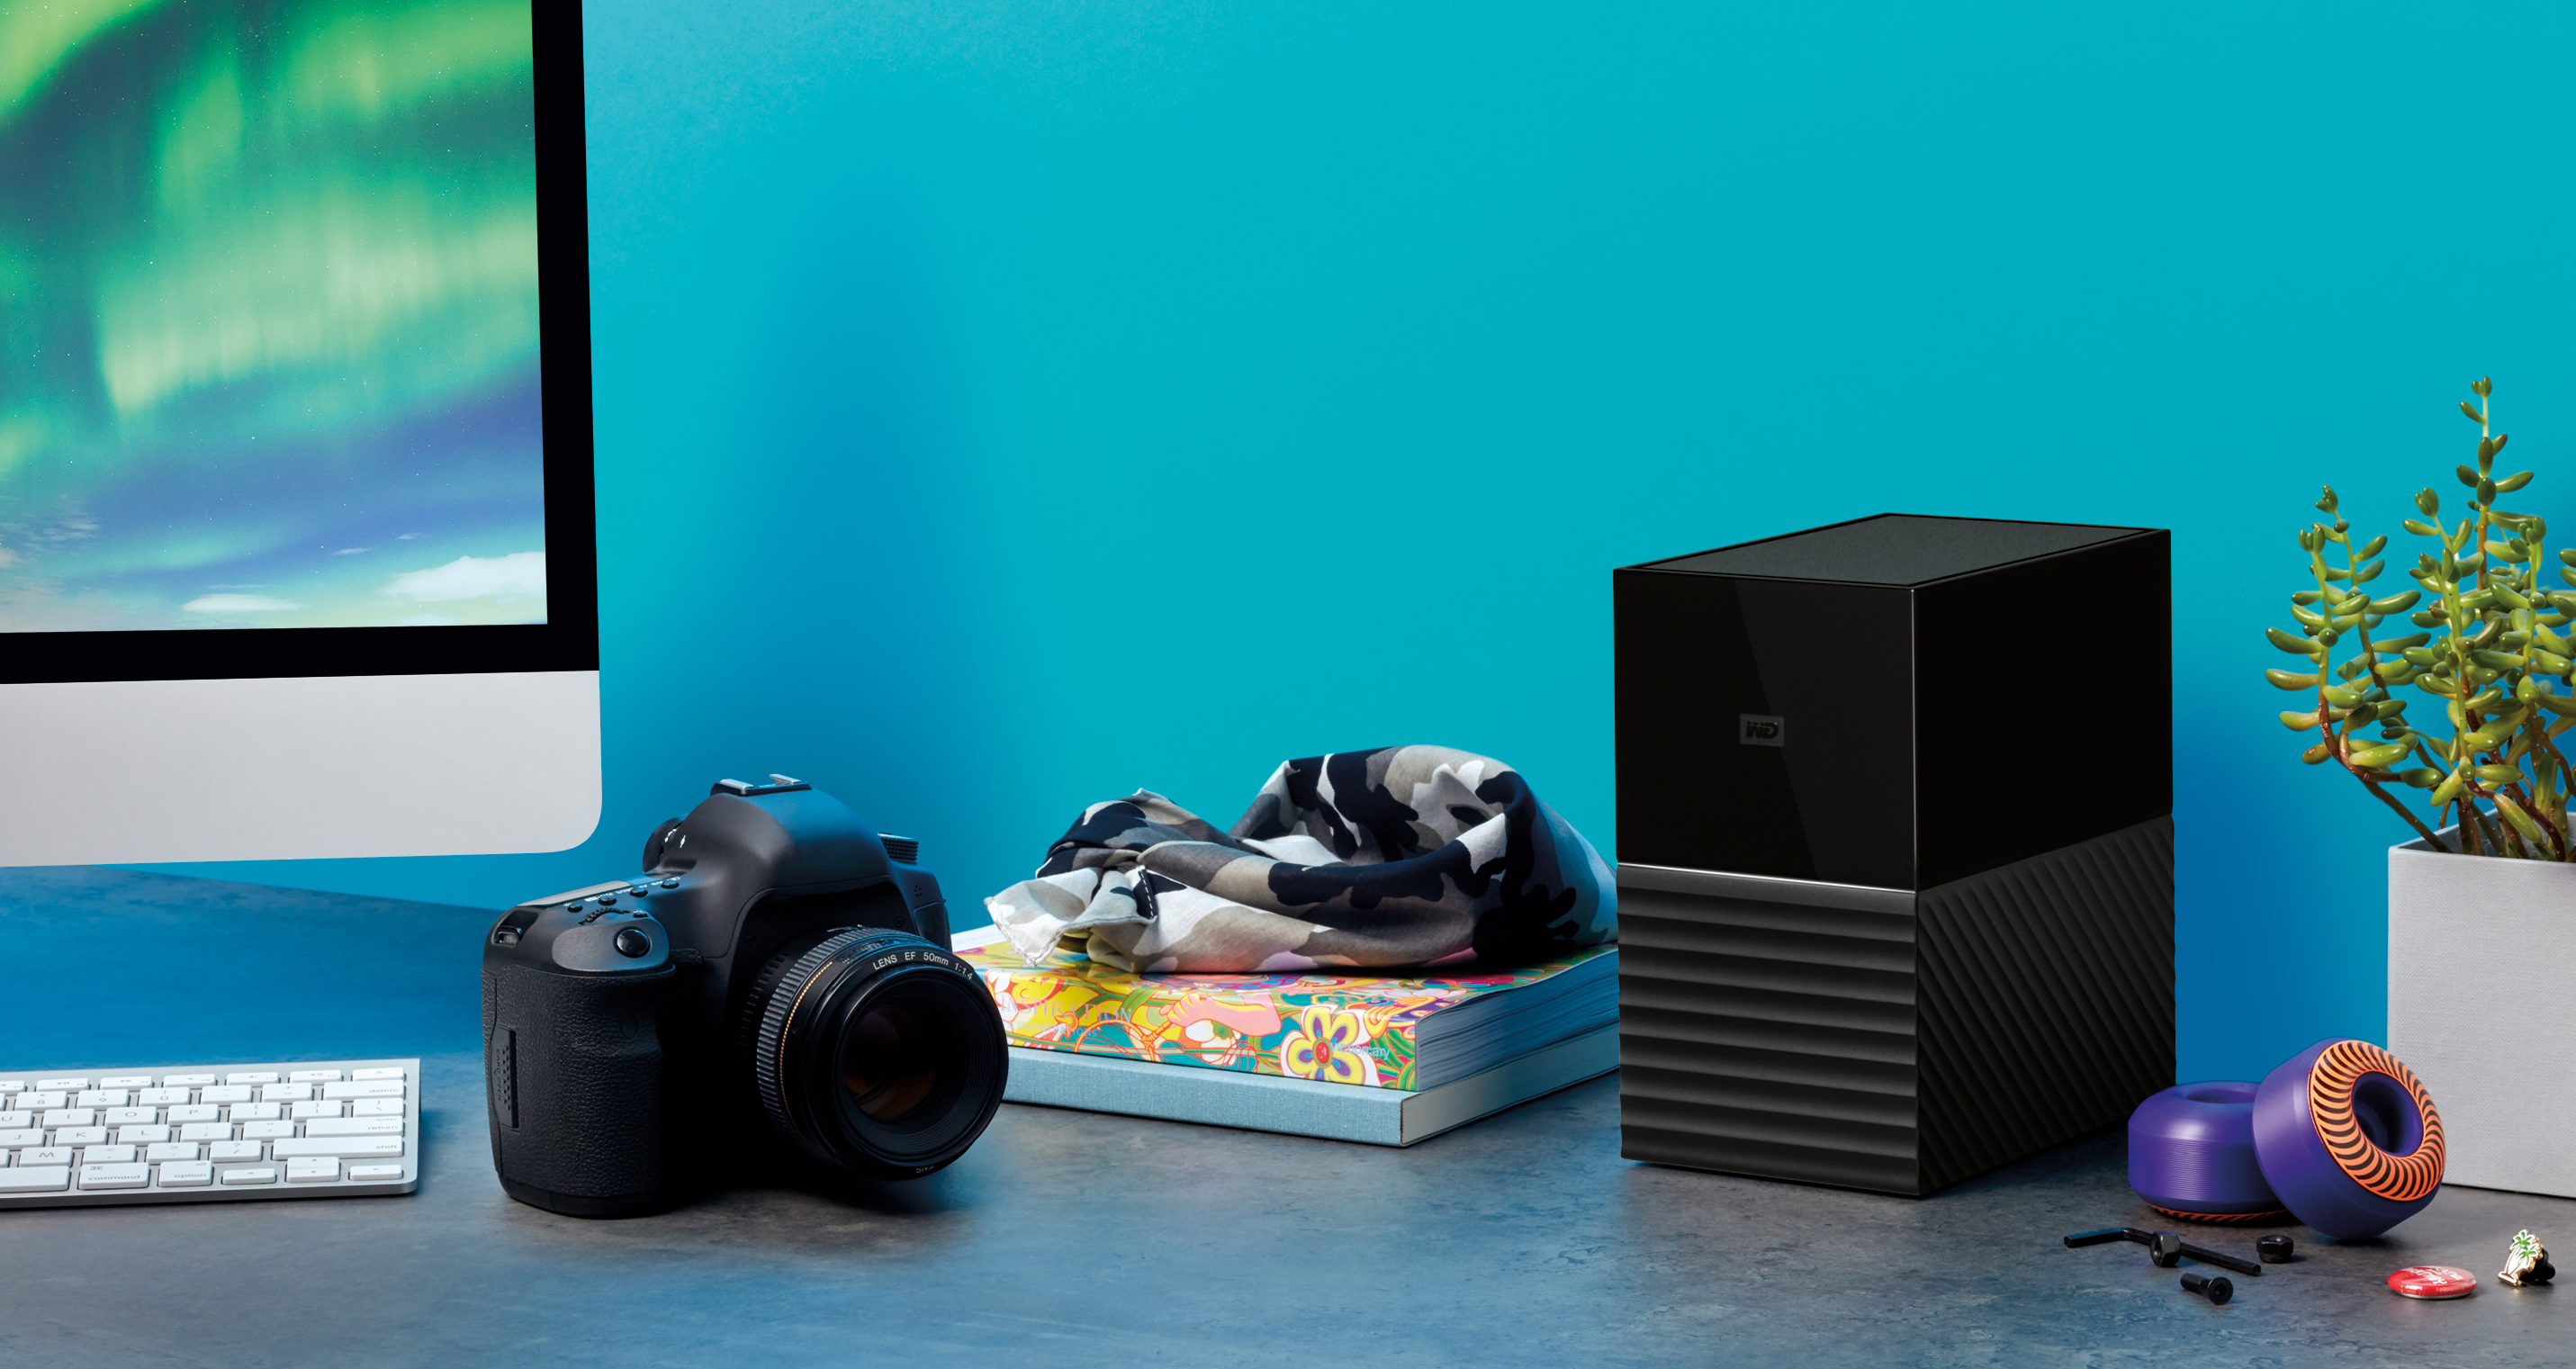 Western Digital Launches New My Book Duo Storage Systems